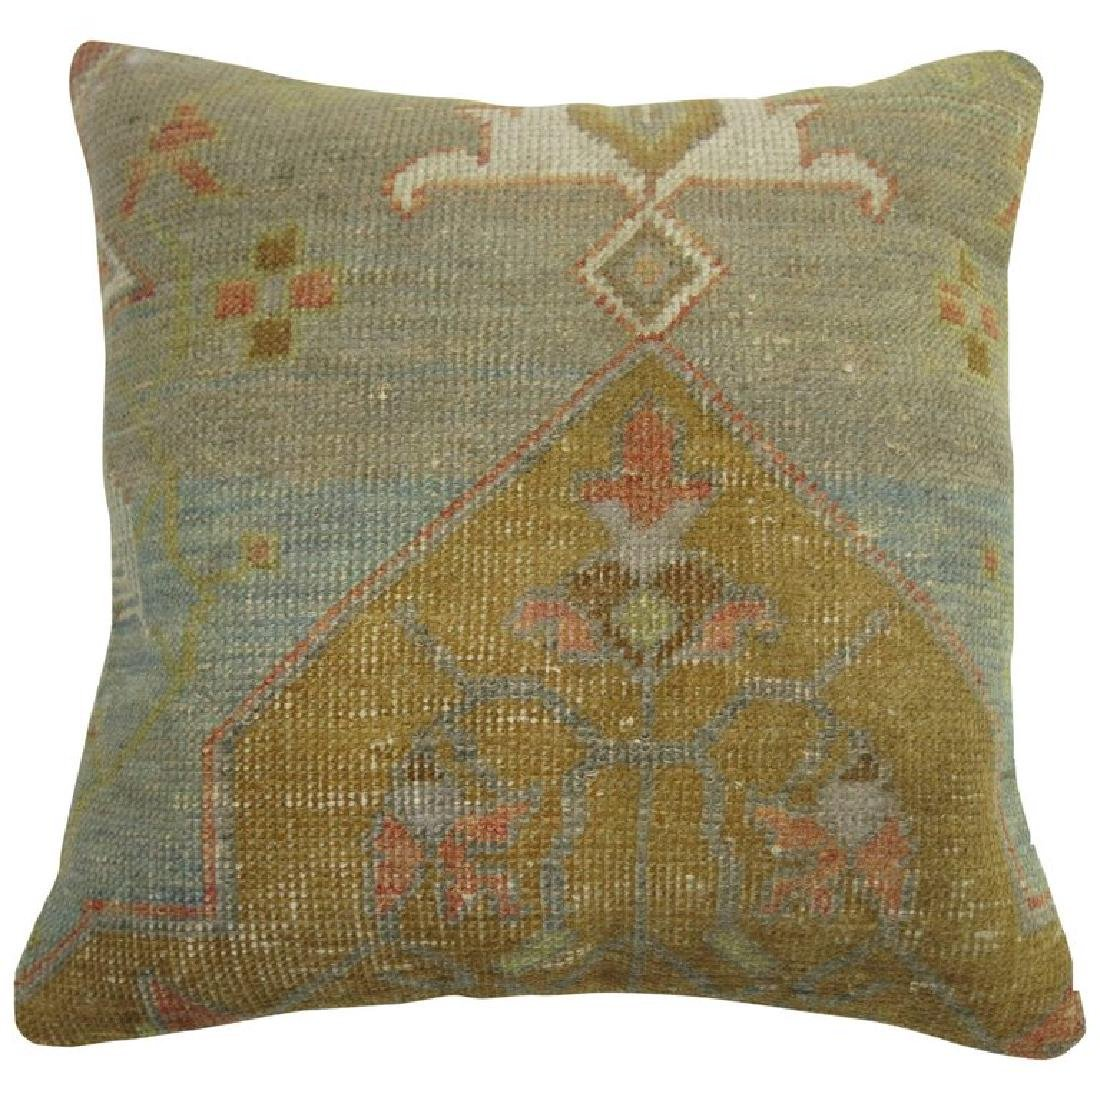 Turkish Oushak Rug Pillow 1.6x1.5x1